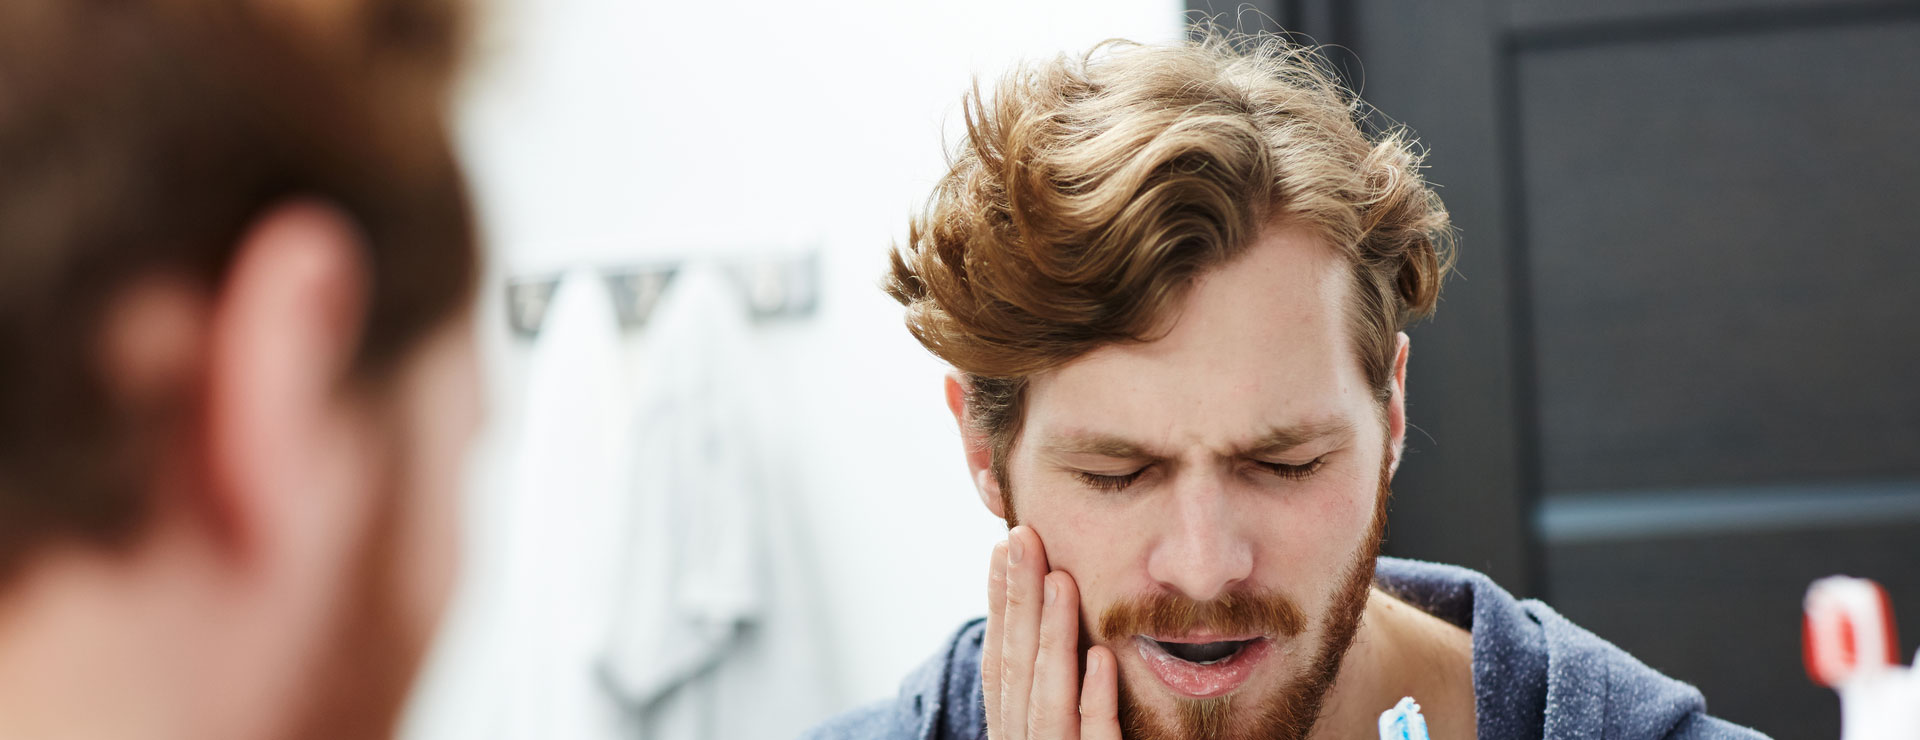 A person who is having TMJ pain